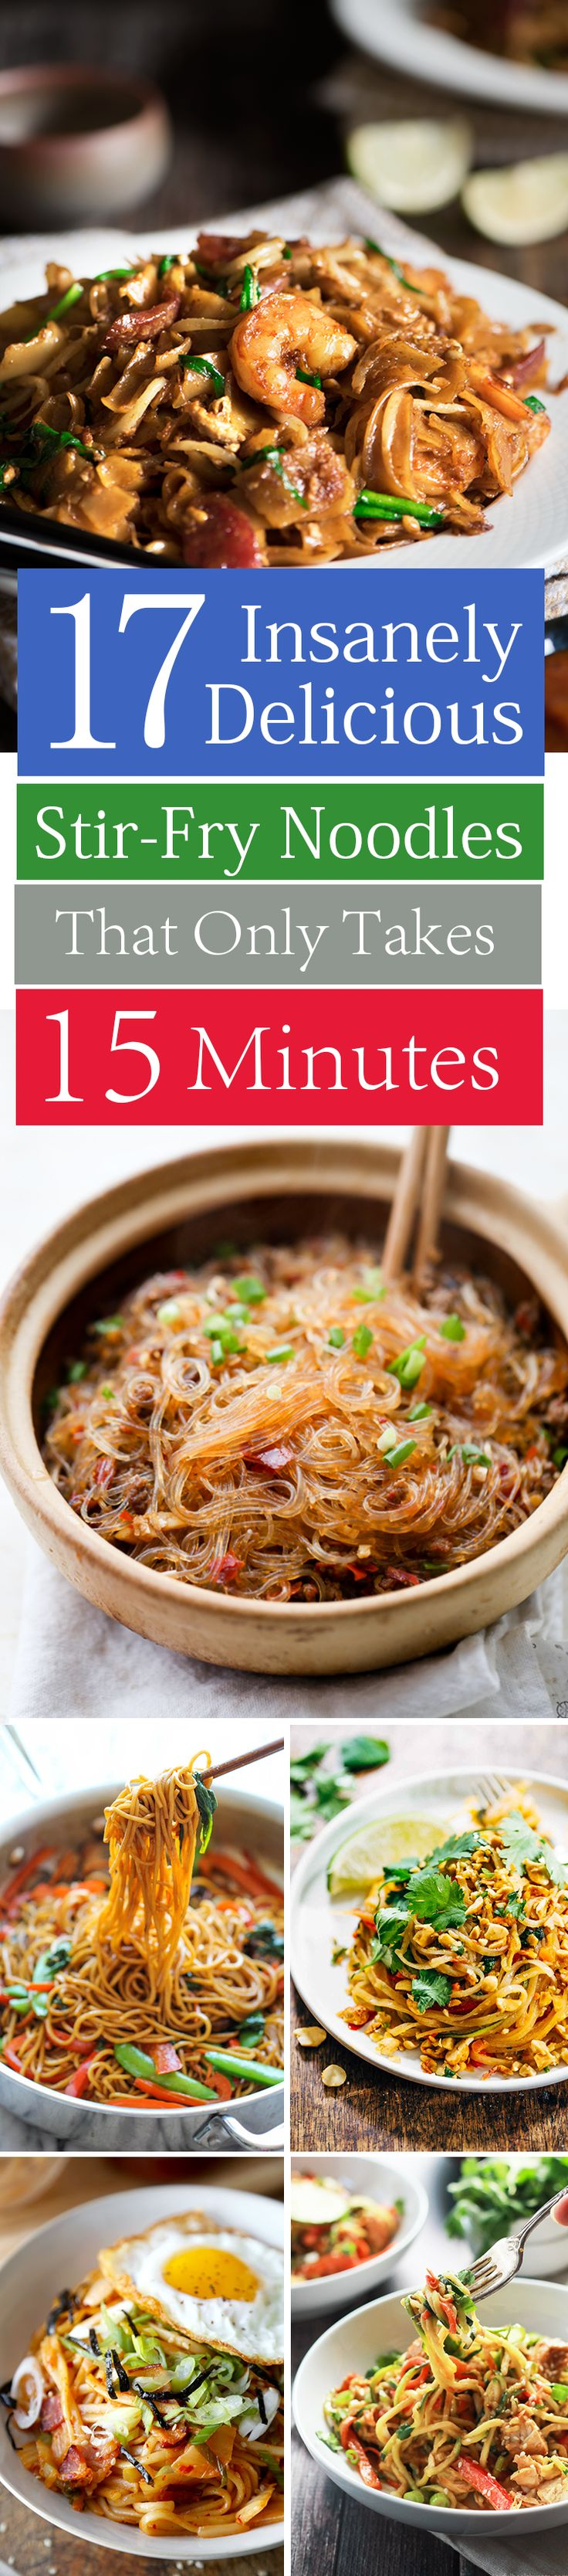 17 Insanely Delicious Stir-Fry Noodles That'll Only Take 15 Minutes